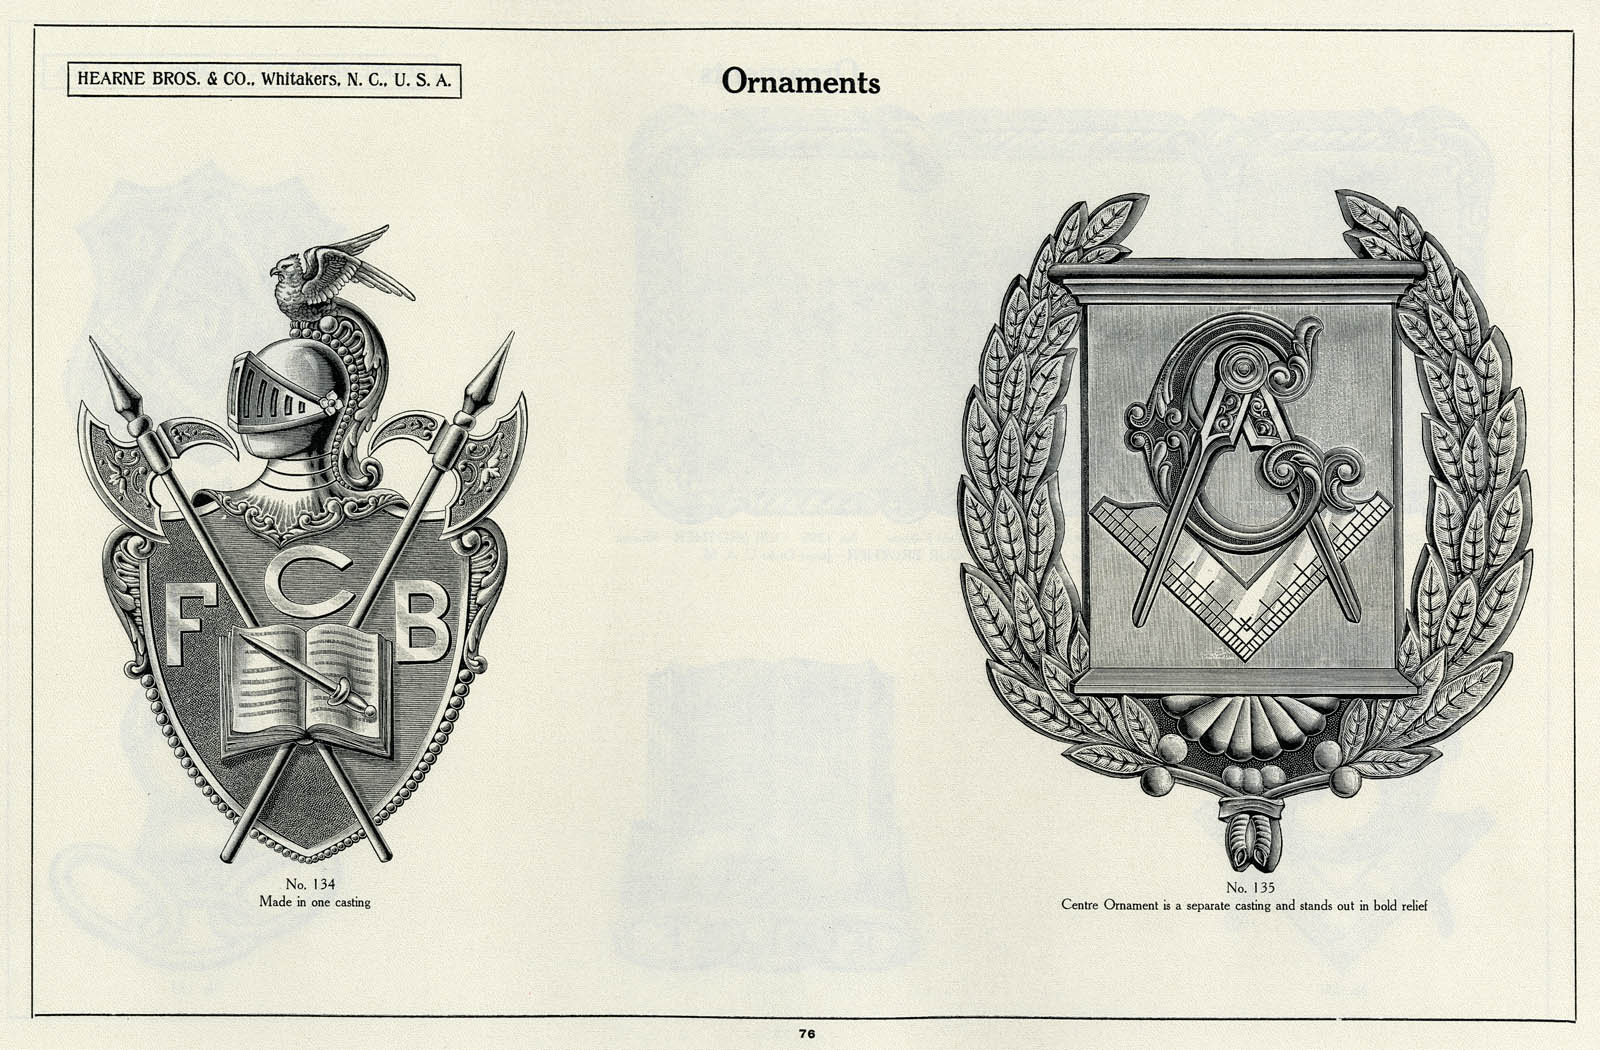 Ornamental hardware for caskets and coffins